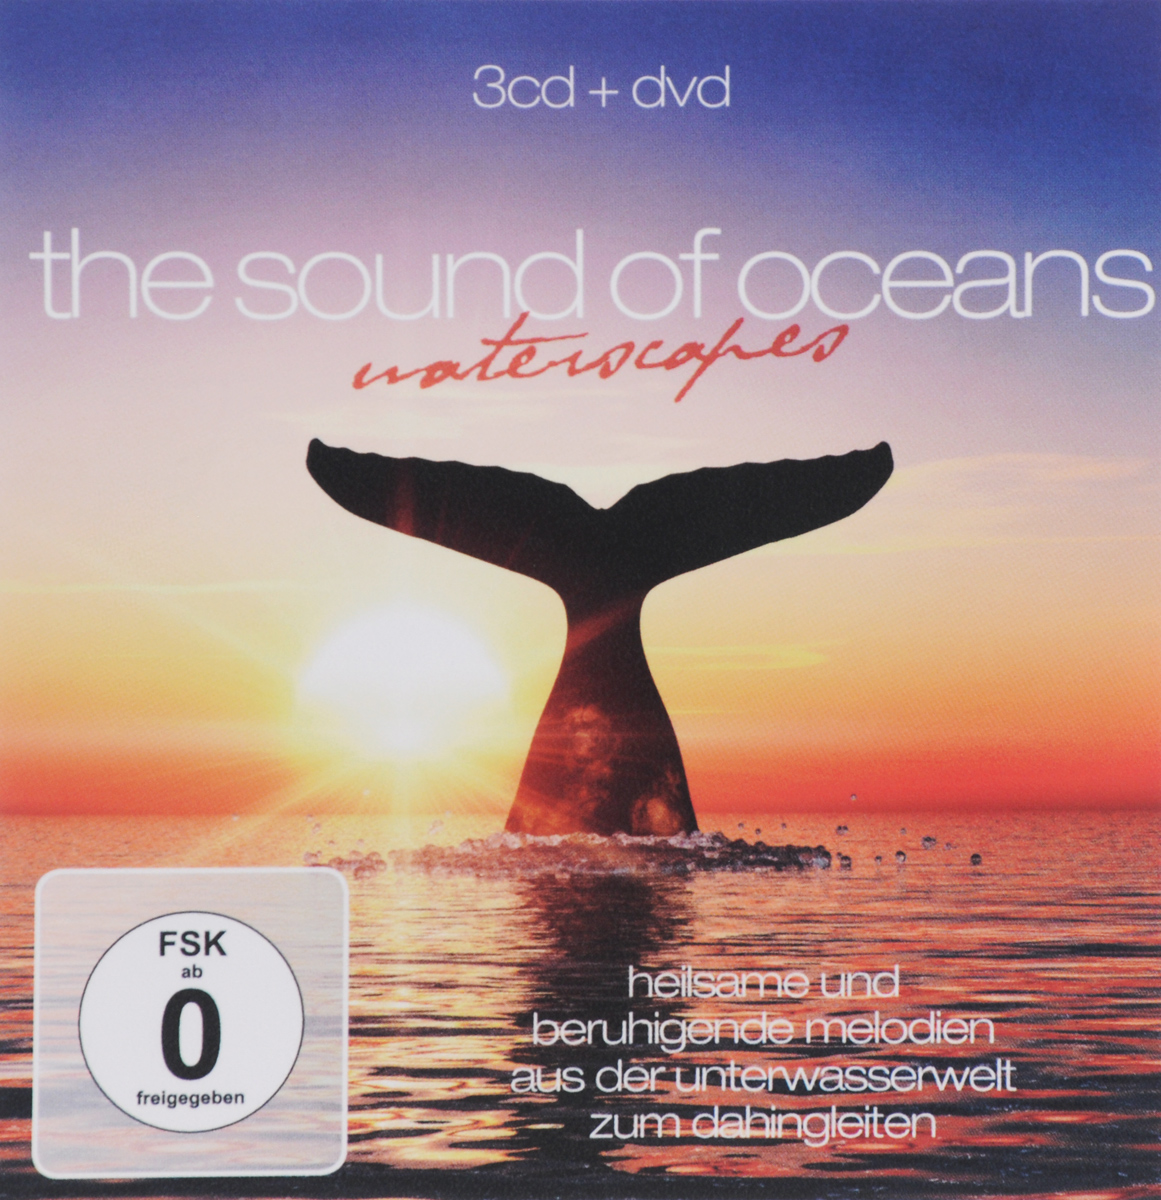 Рхабан Али Шей,Yuma Haruto Paliashvili The Sound Of Oceans. Waterscapes (3 CD + DVD) hamada elsayed ali conservation of plant diversity in mountainous arid environments